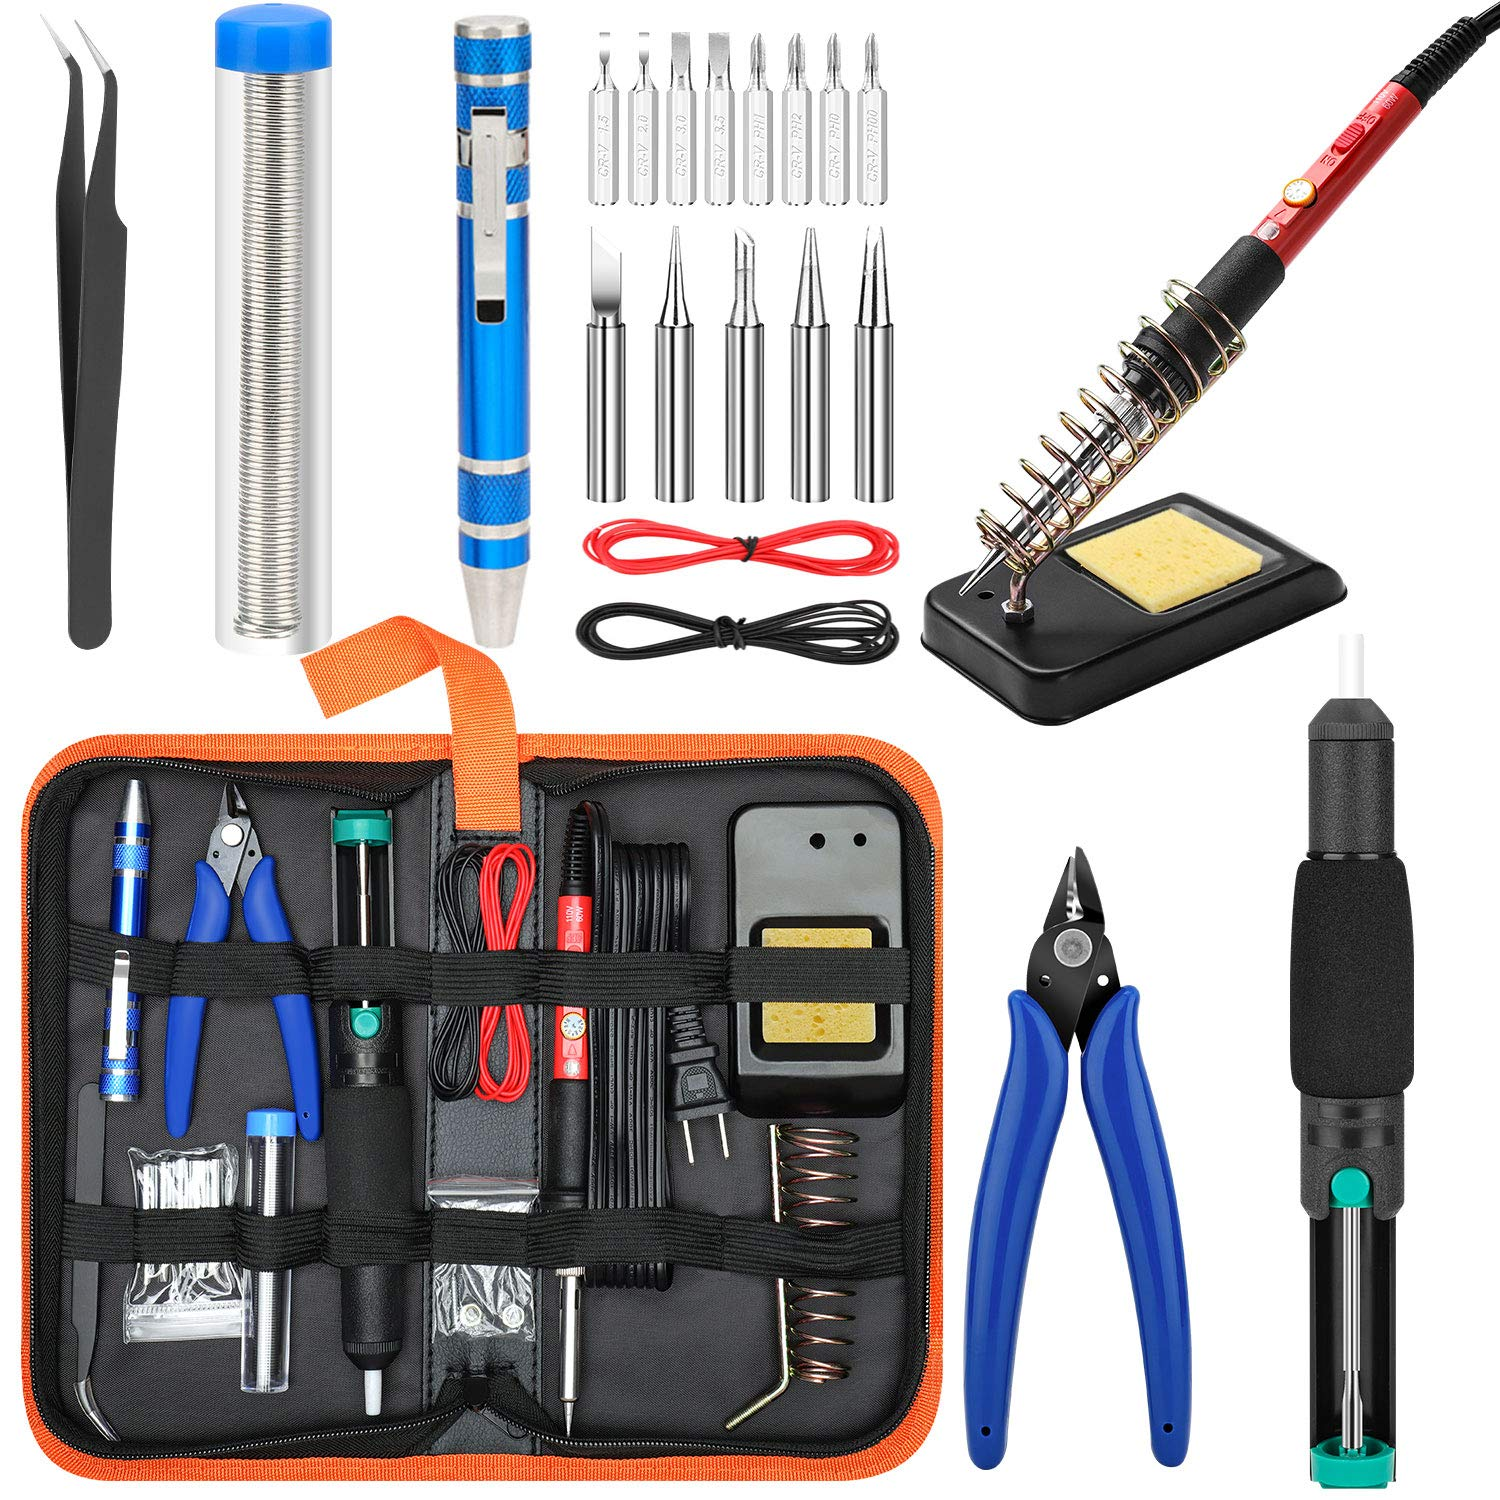 Soldering Iron Kit Electronics [Upgraded], Yome 15-in-1 60w Adjustable Temperature Soldering Iron with ON/OFF Switch, 5pcs Soldering Iron Tips, DE-soldering Pump, Wire cutters, screwdriver, Stand